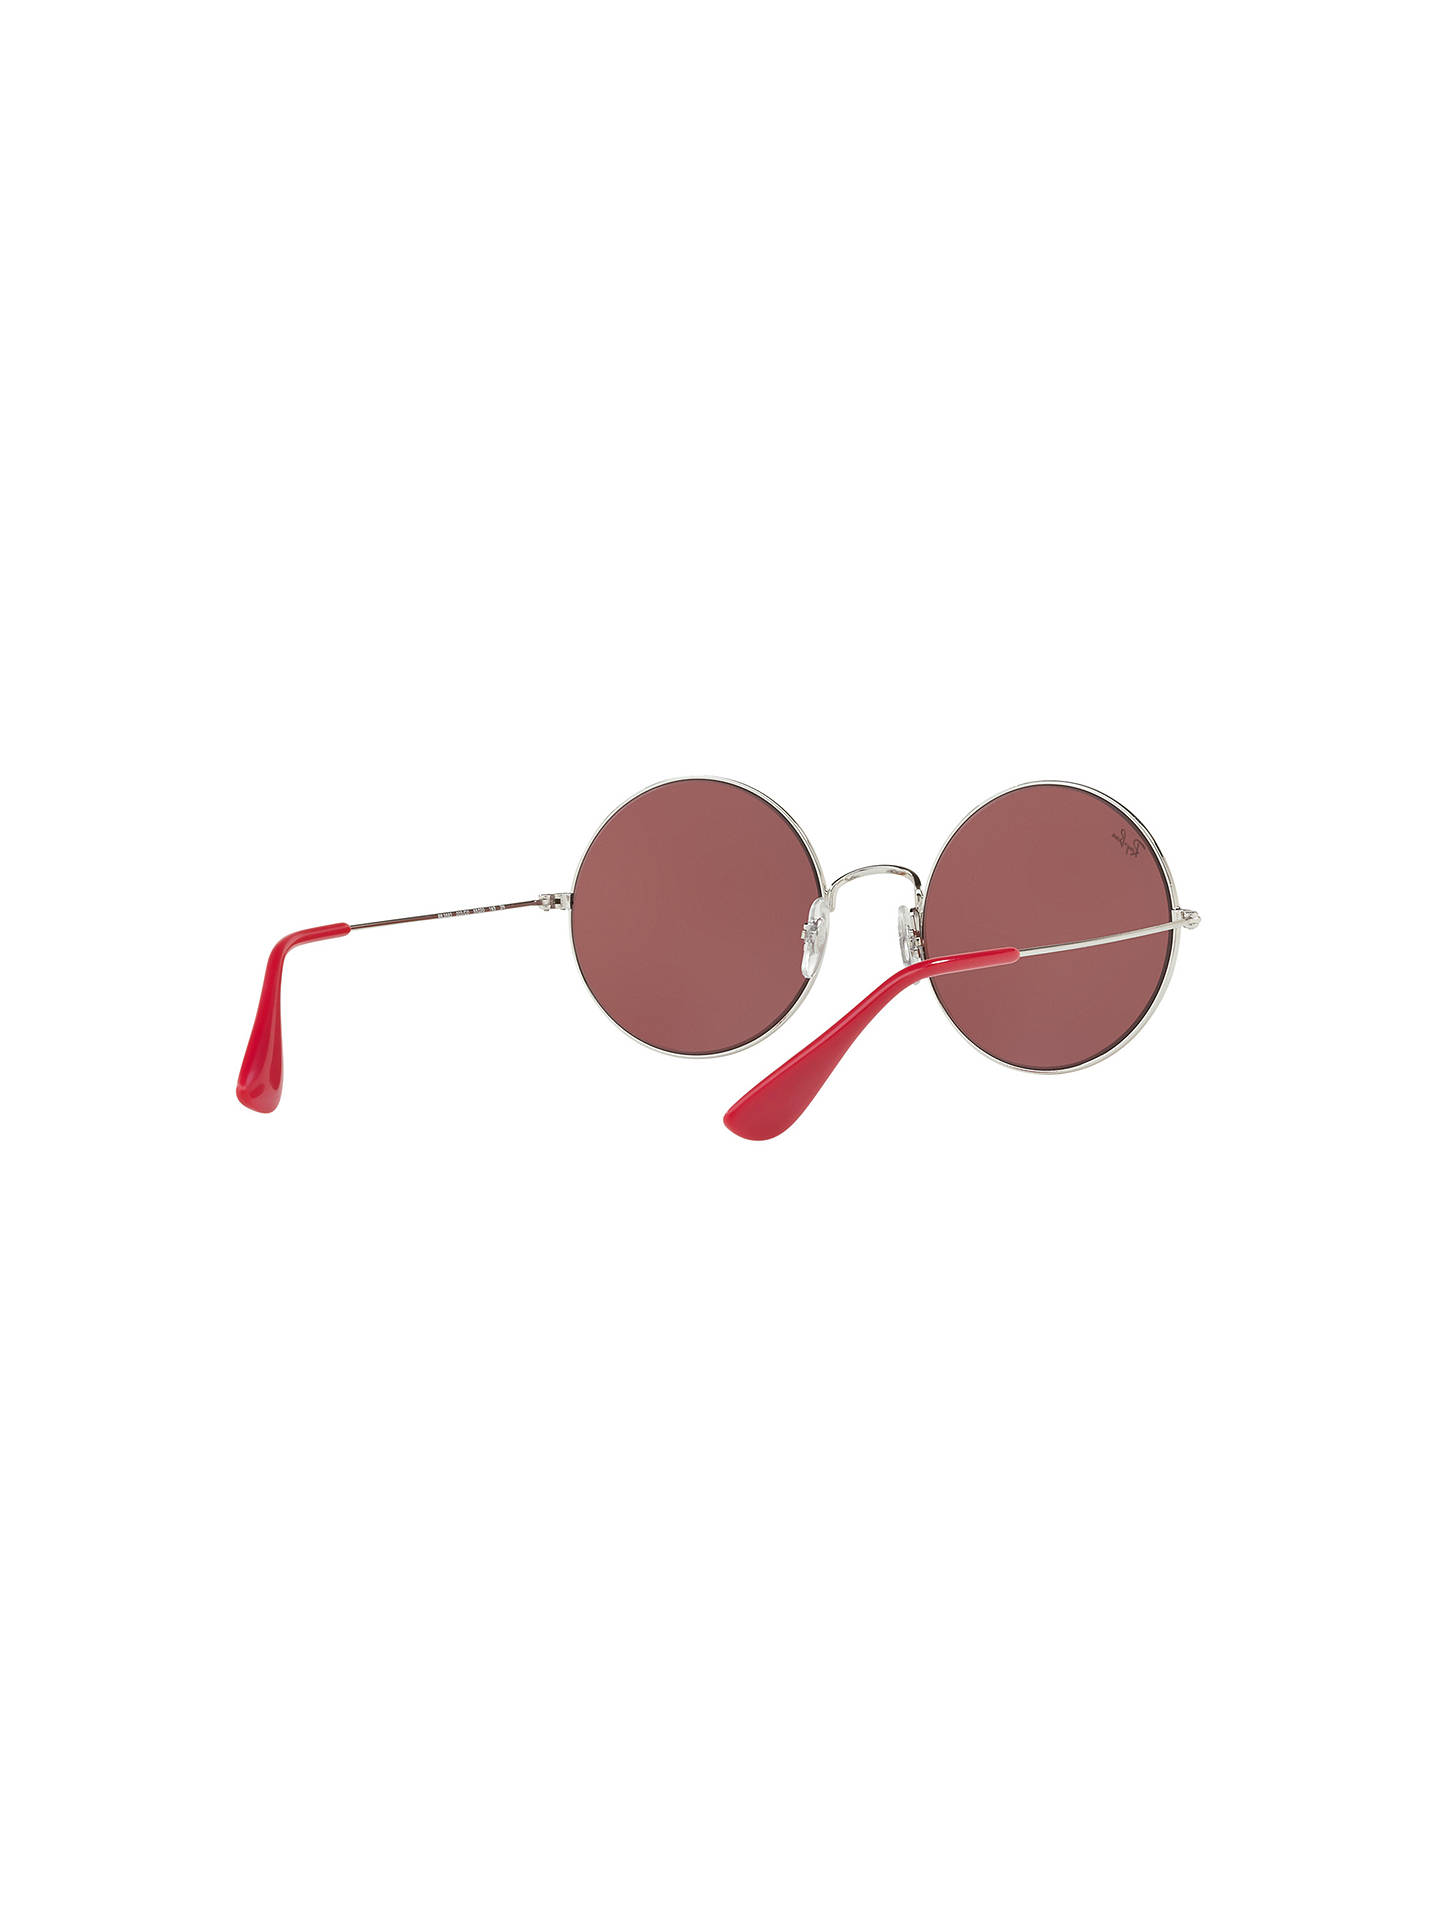 Buy Ray-Ban RB3592 Ja-Jo Round Sunglasses, Silver/Red Online at johnlewis.com